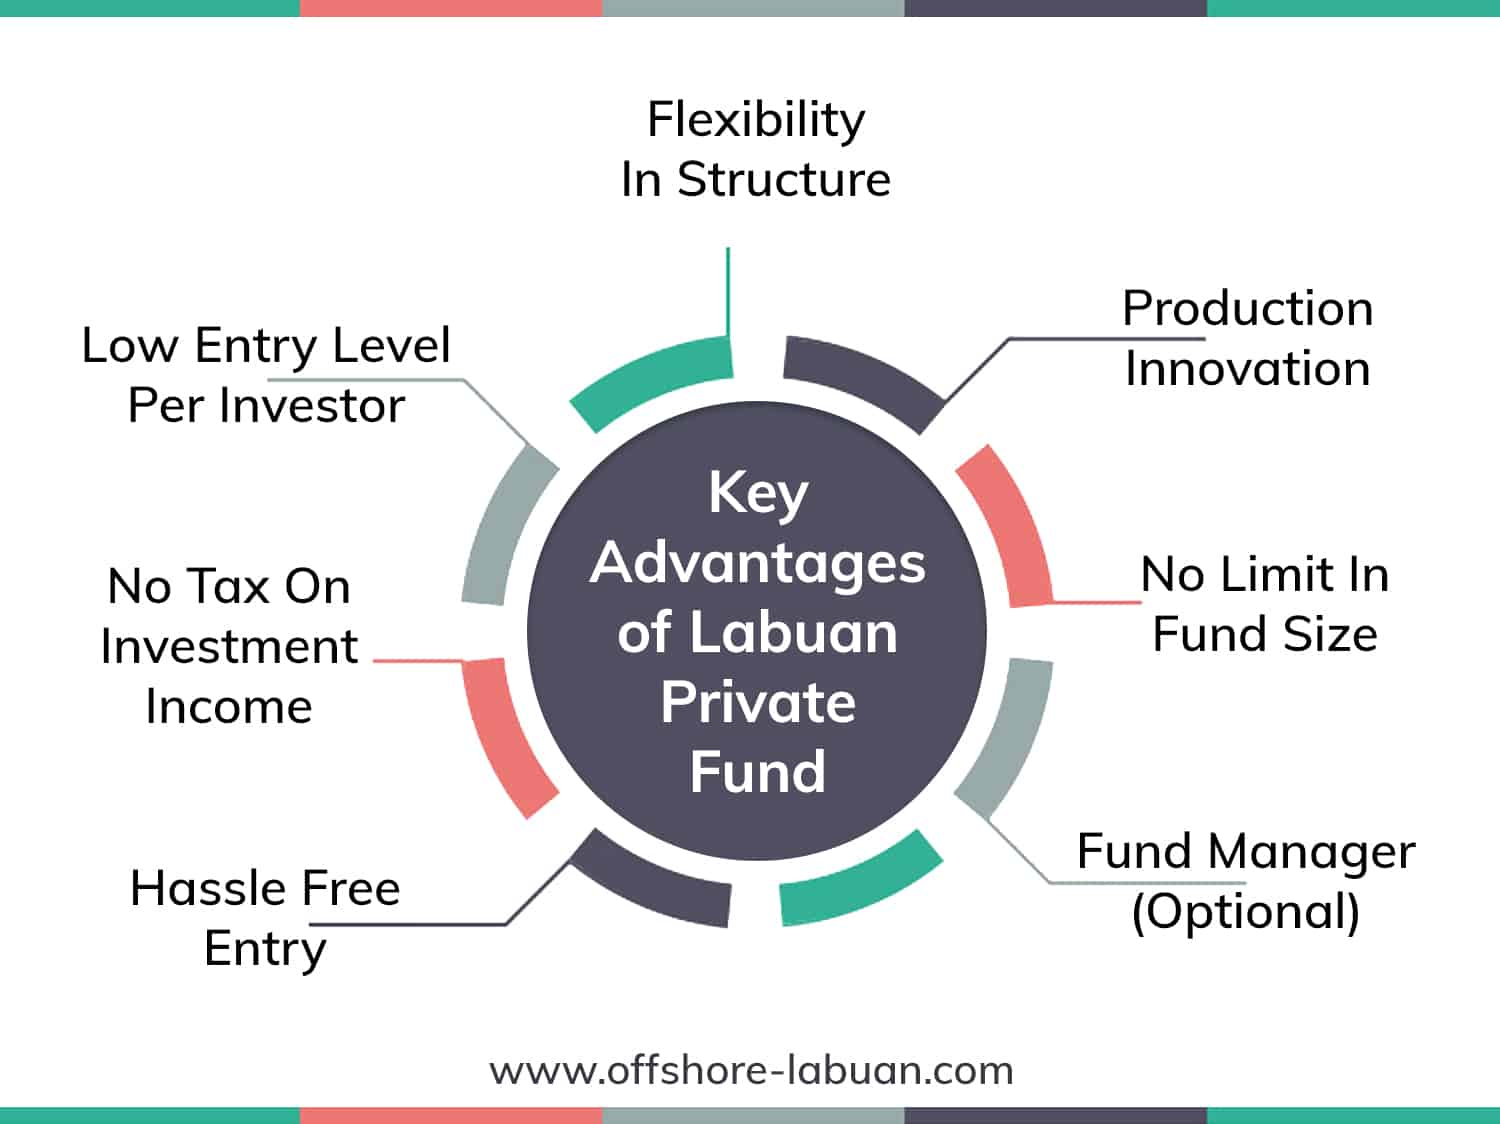 Key Advantages of Labuan Private Fund